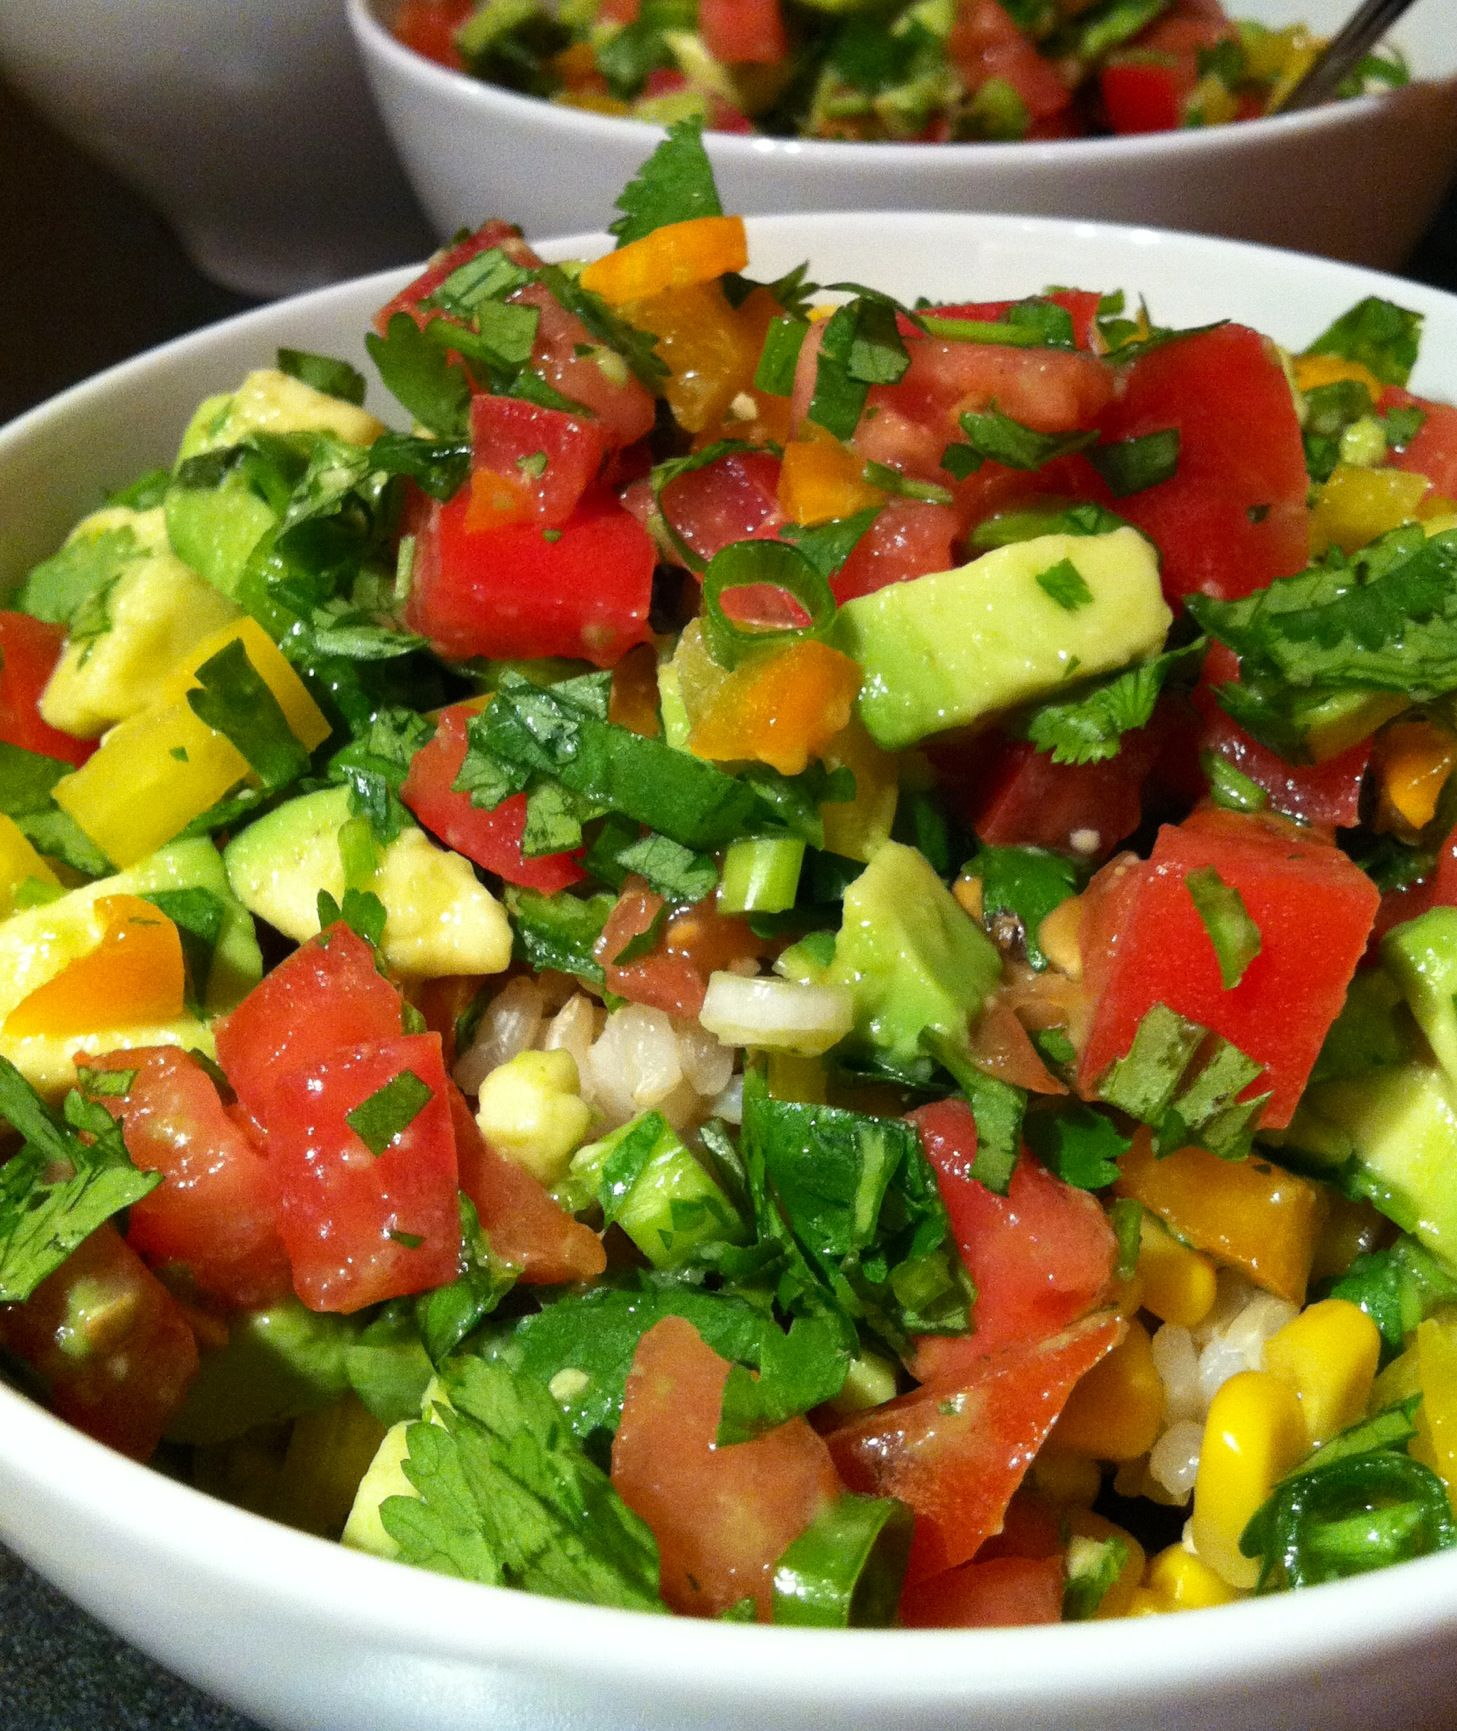 Black Beans and Rice Salad with Avocado and Tomatoes ...DELISH!